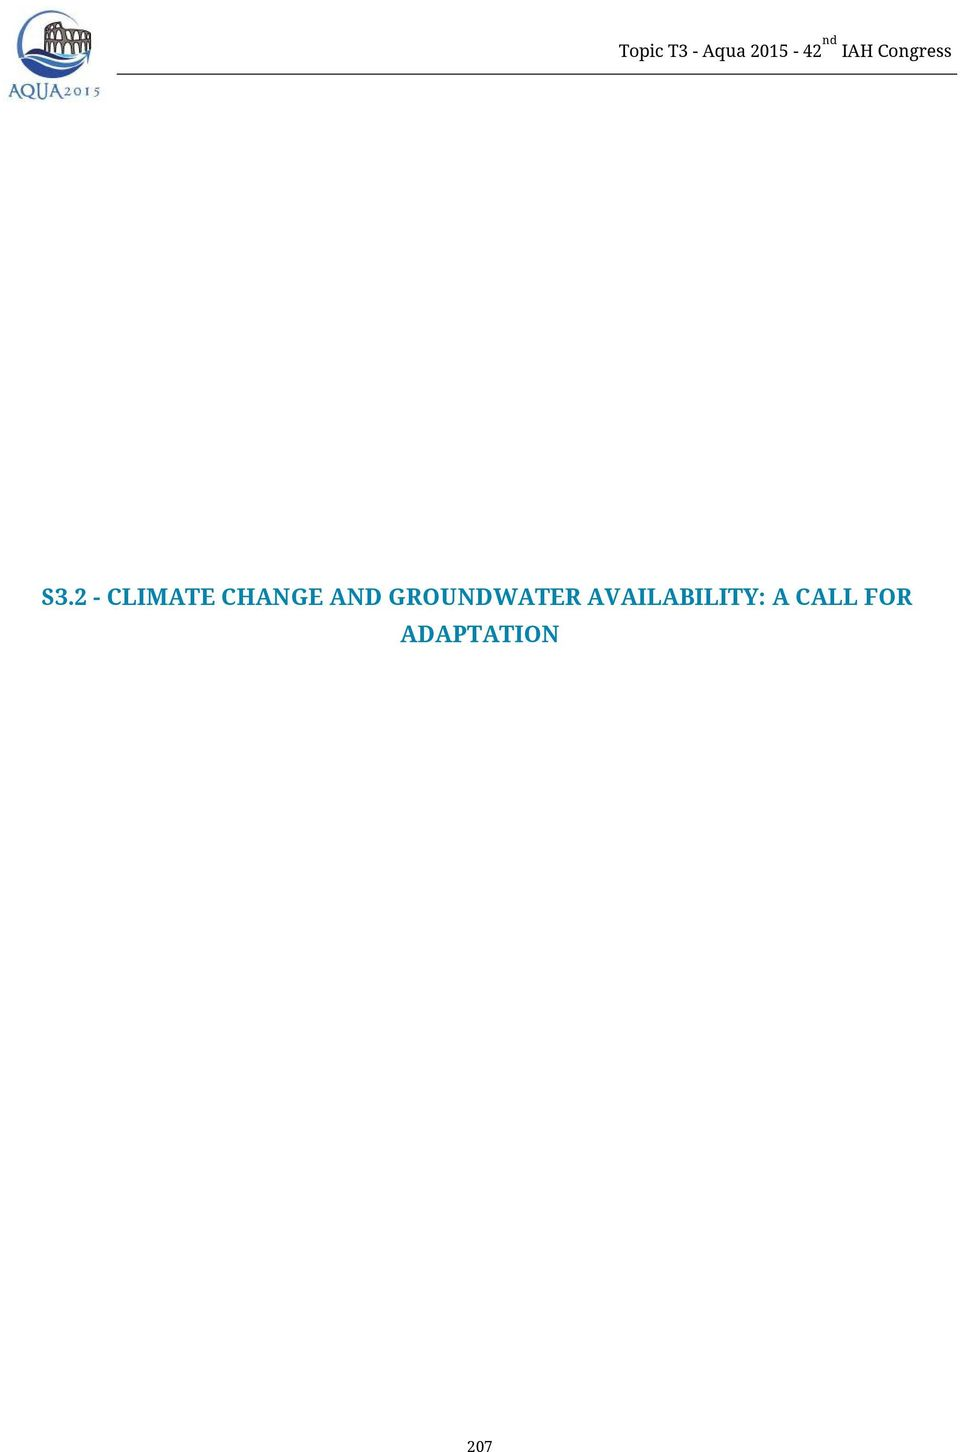 2 - CLIMATE CHANGE AND